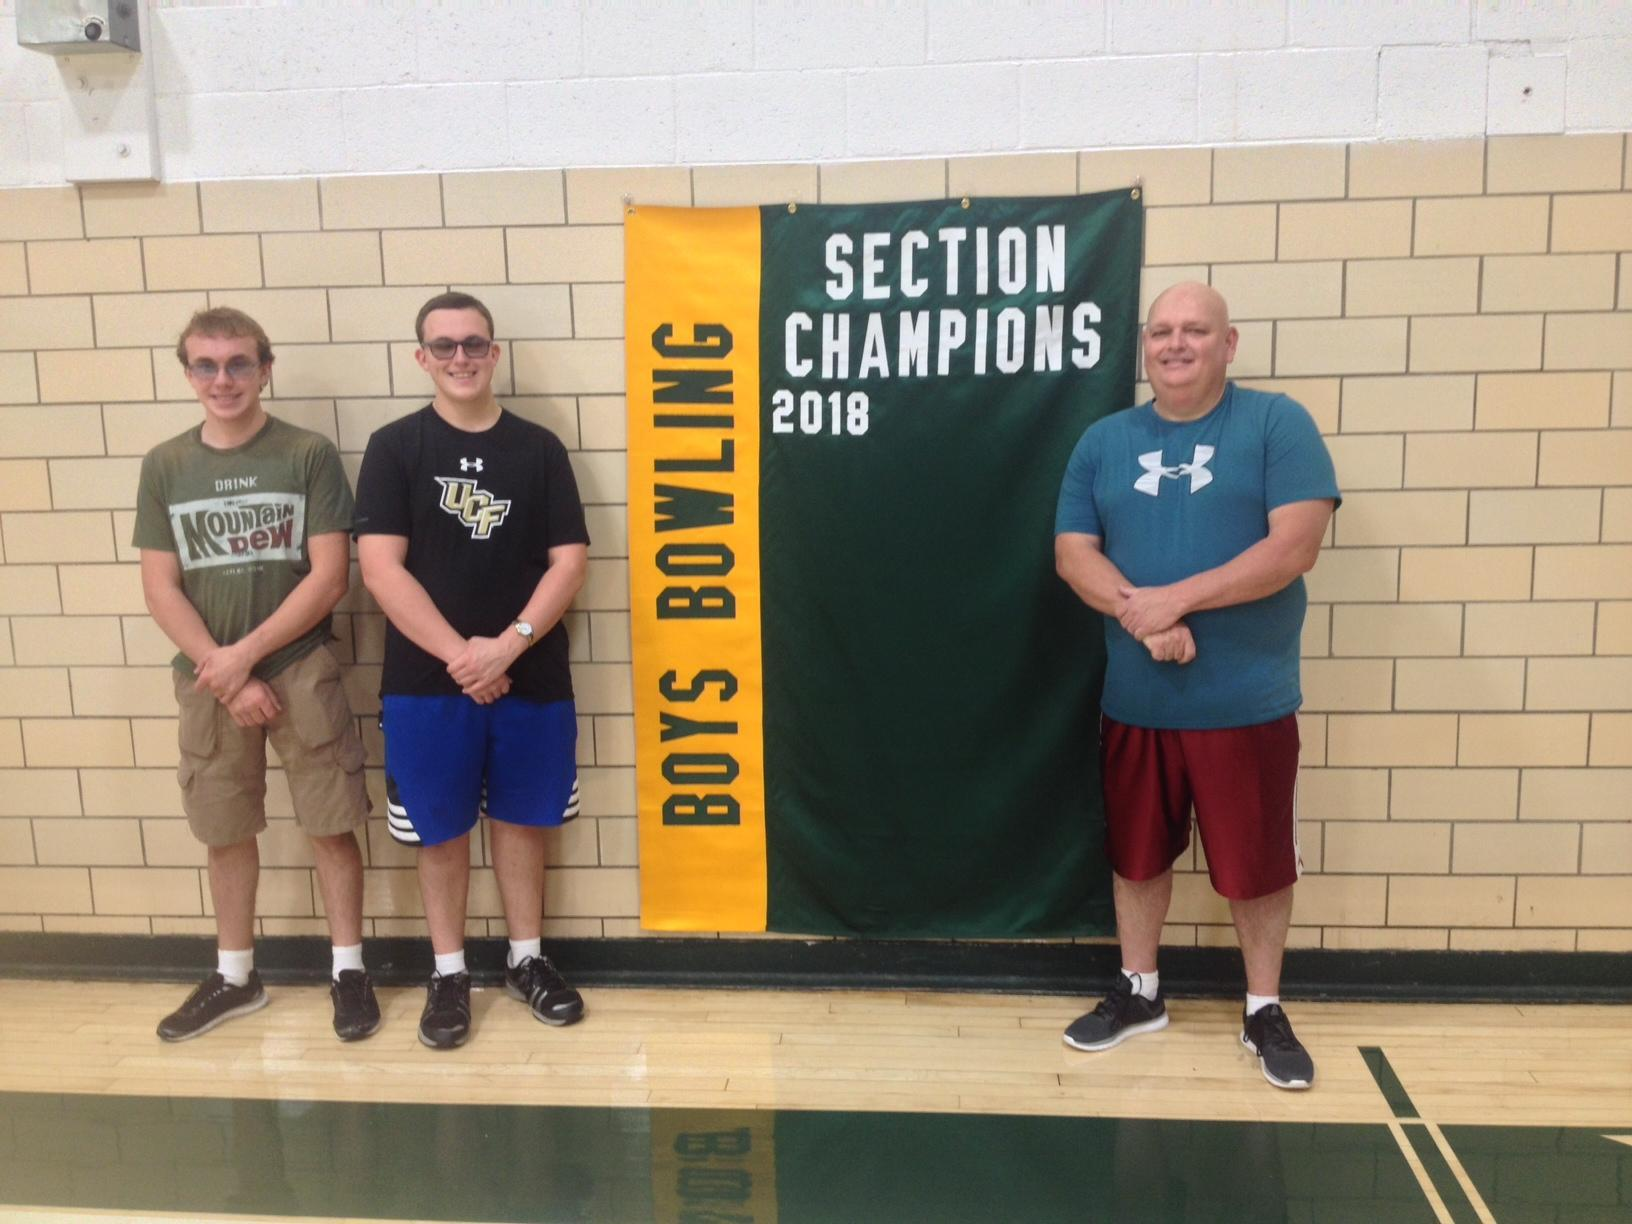 Boys Bowling section champions banner